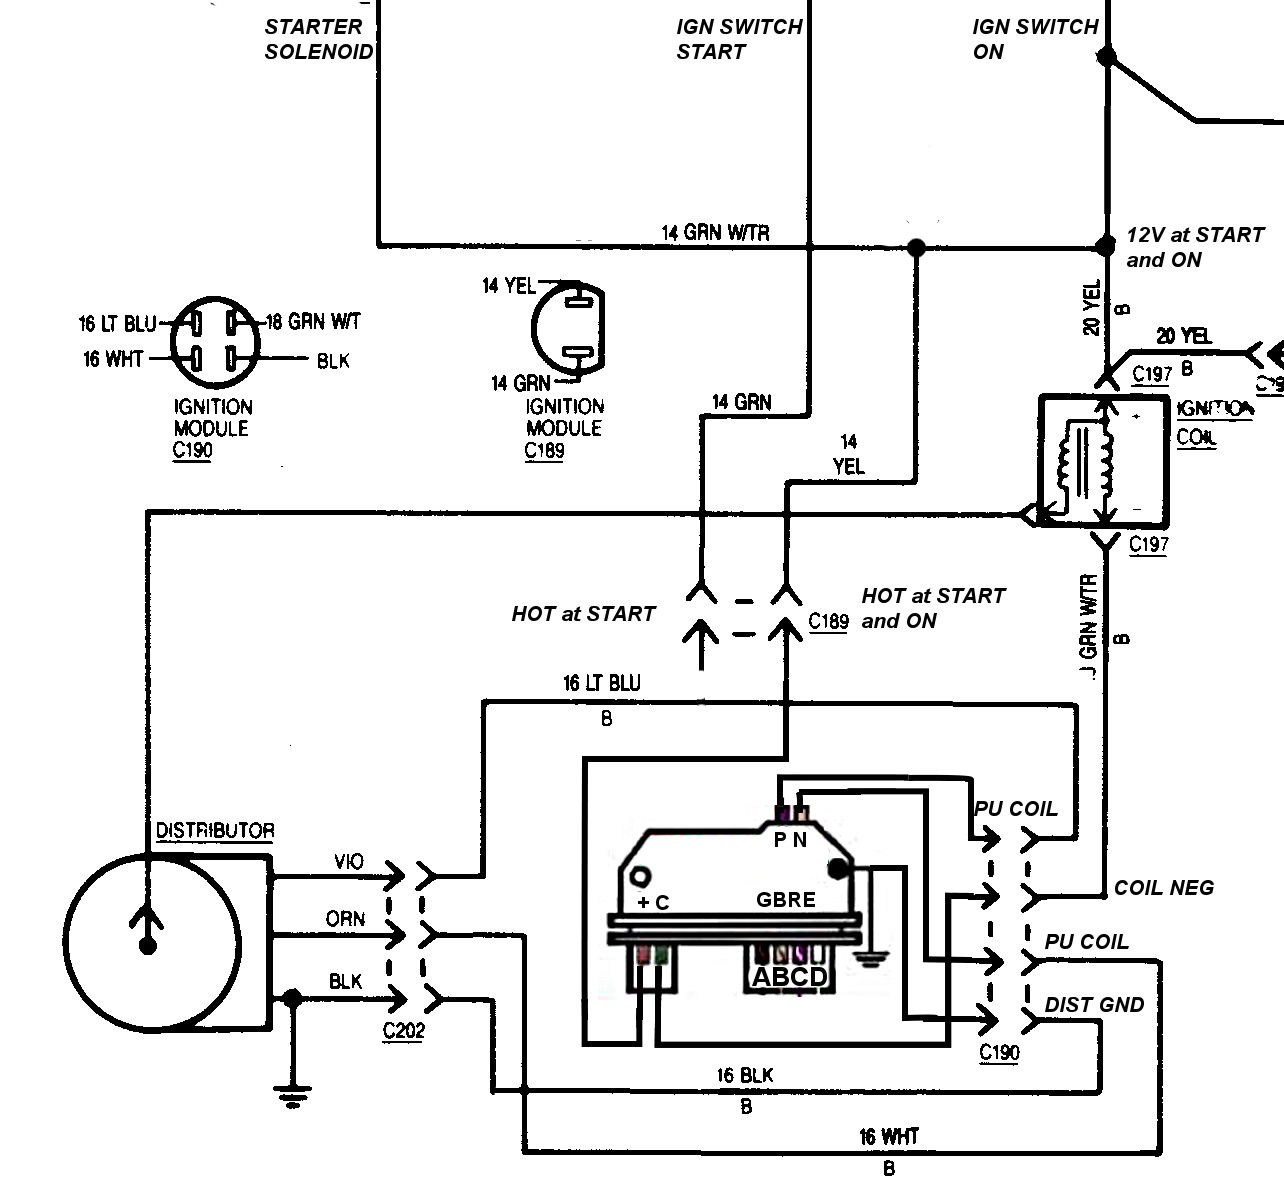 TBI+Wiring+1 troubled child gm tbi ignition wiring gm ignition module wiring diagram at bayanpartner.co